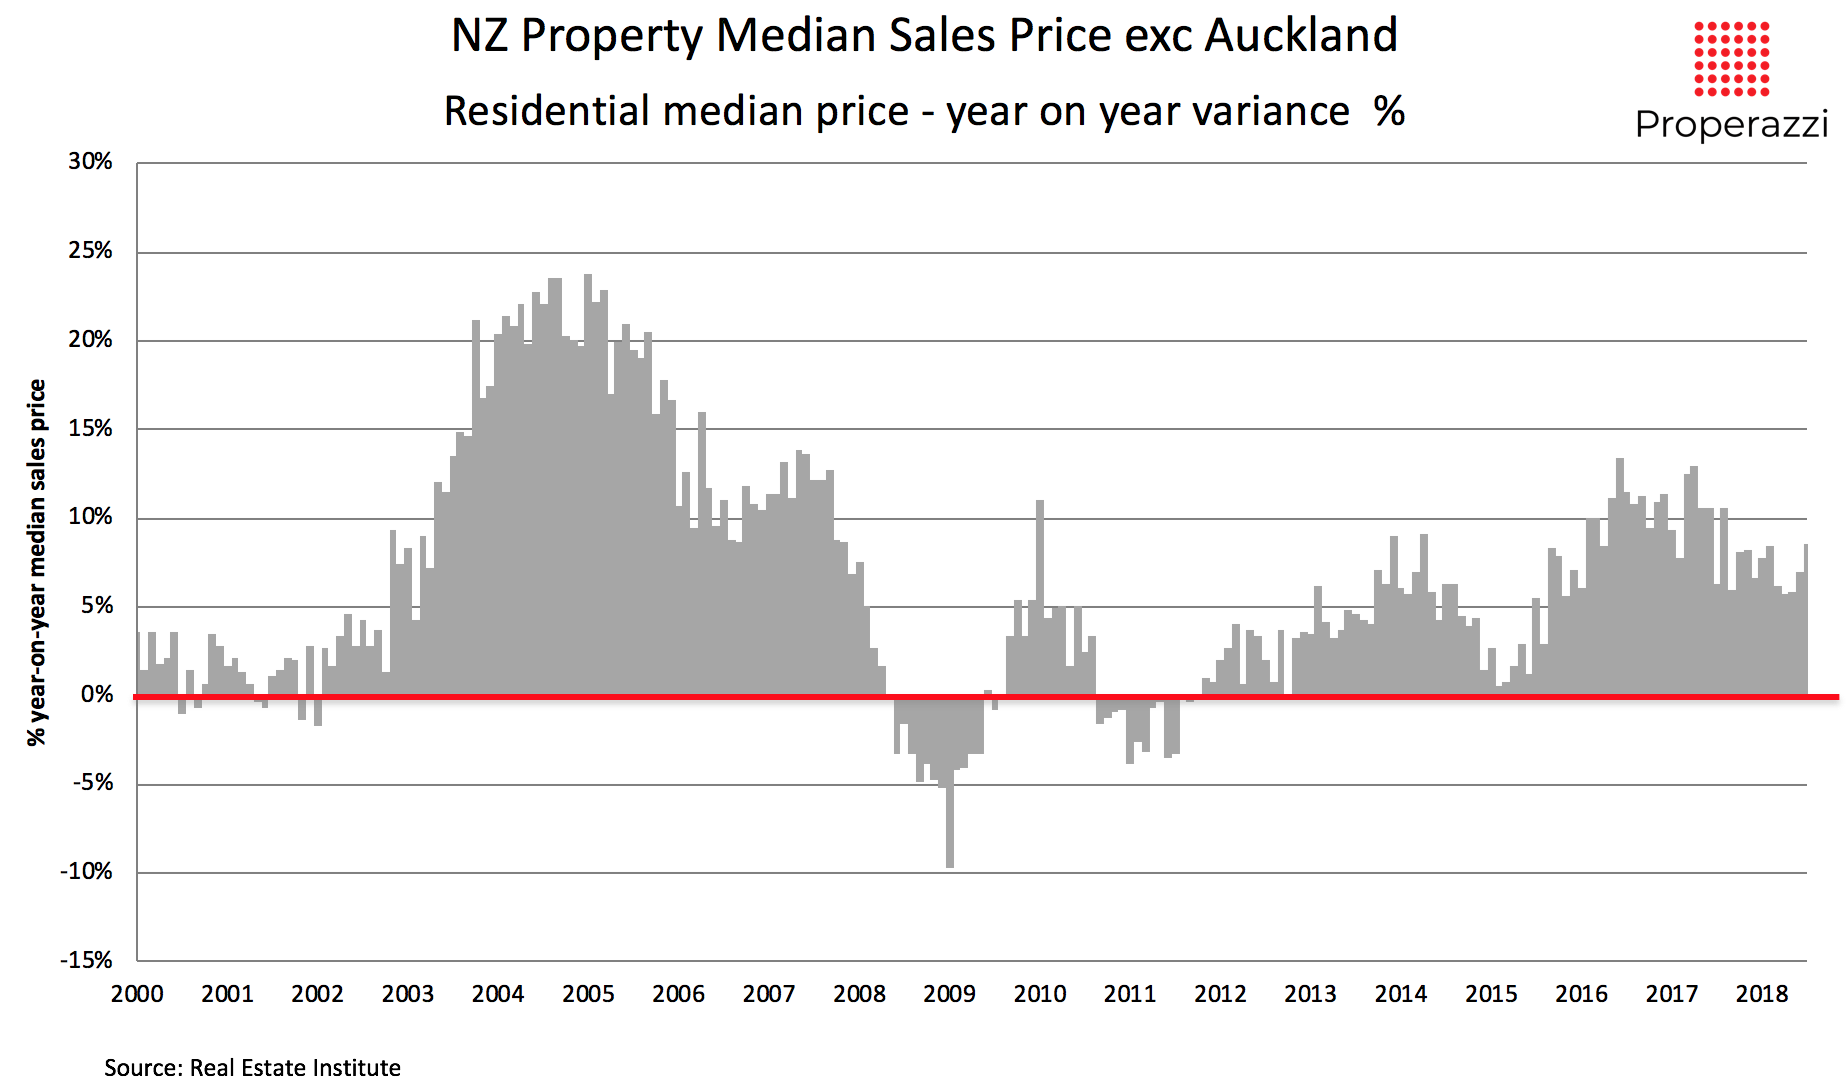 NZ median sale price property excluding Auckland 2000 to Jul 2018